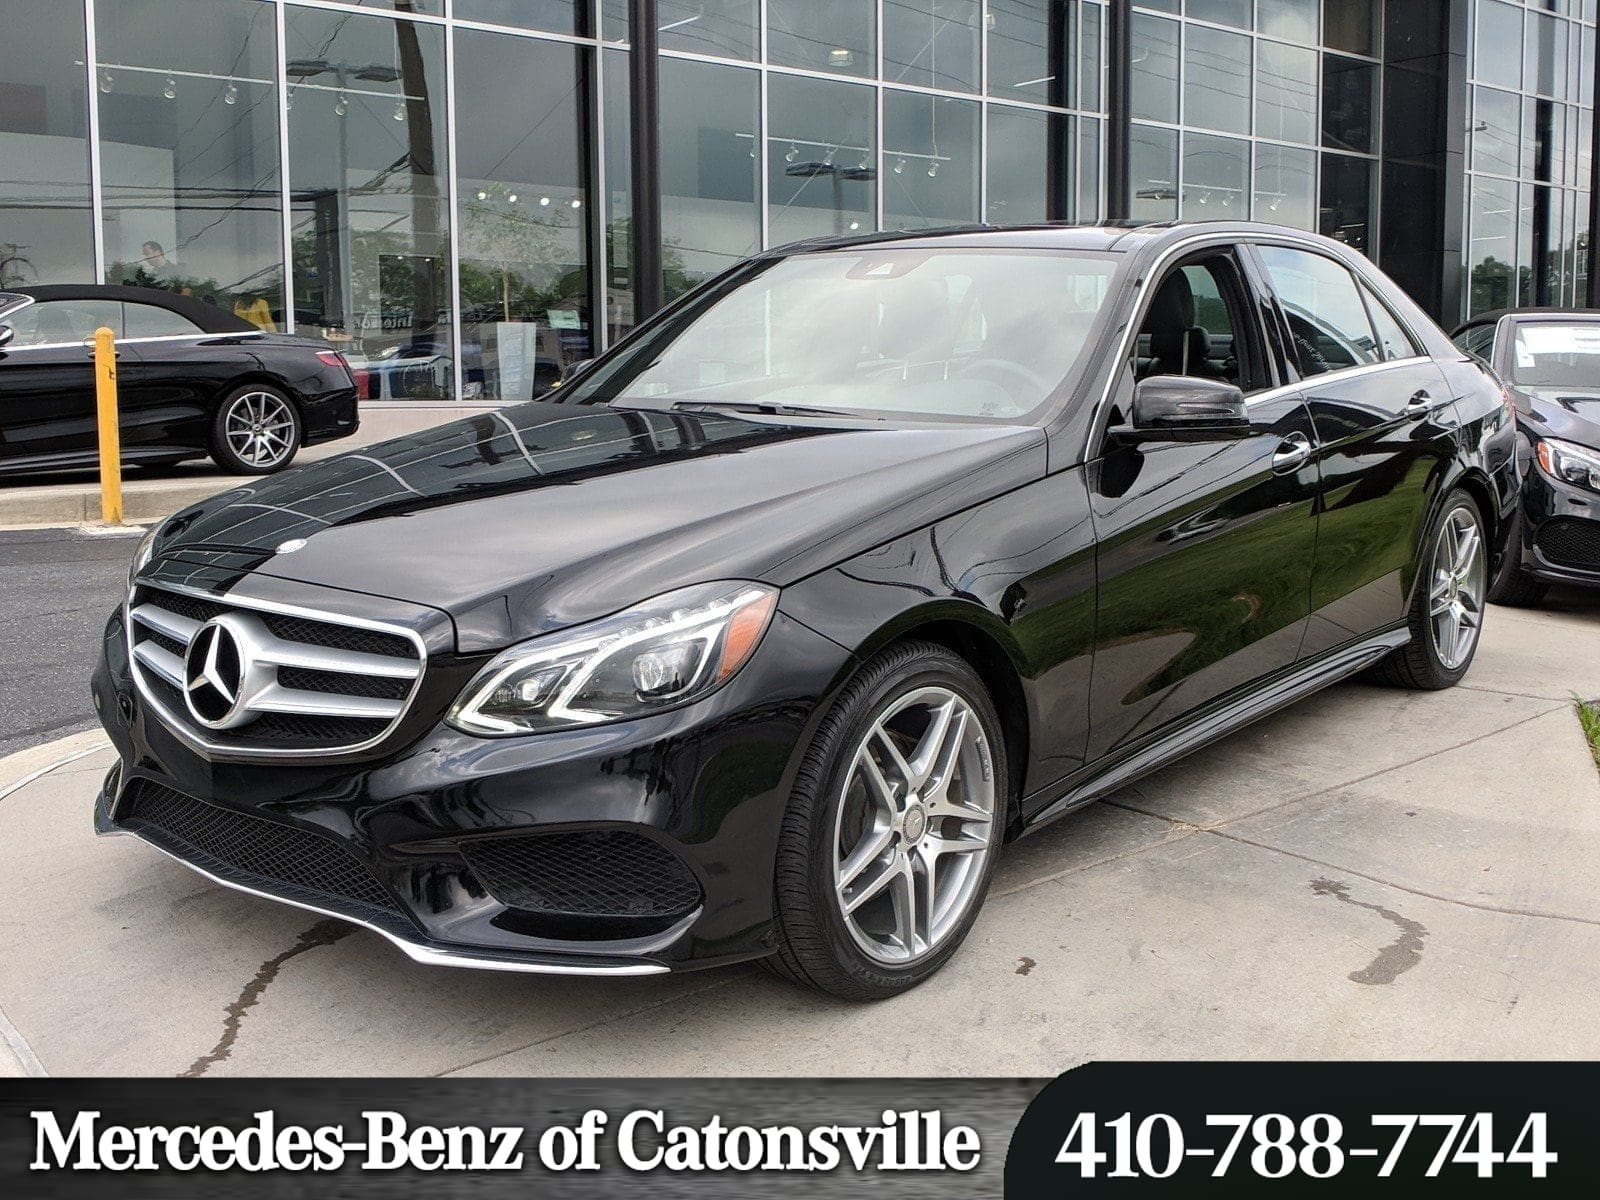 Mercedes Used Cars for Sale Near Me Luxury Featured Used Cars for Sale In Baltimore Md